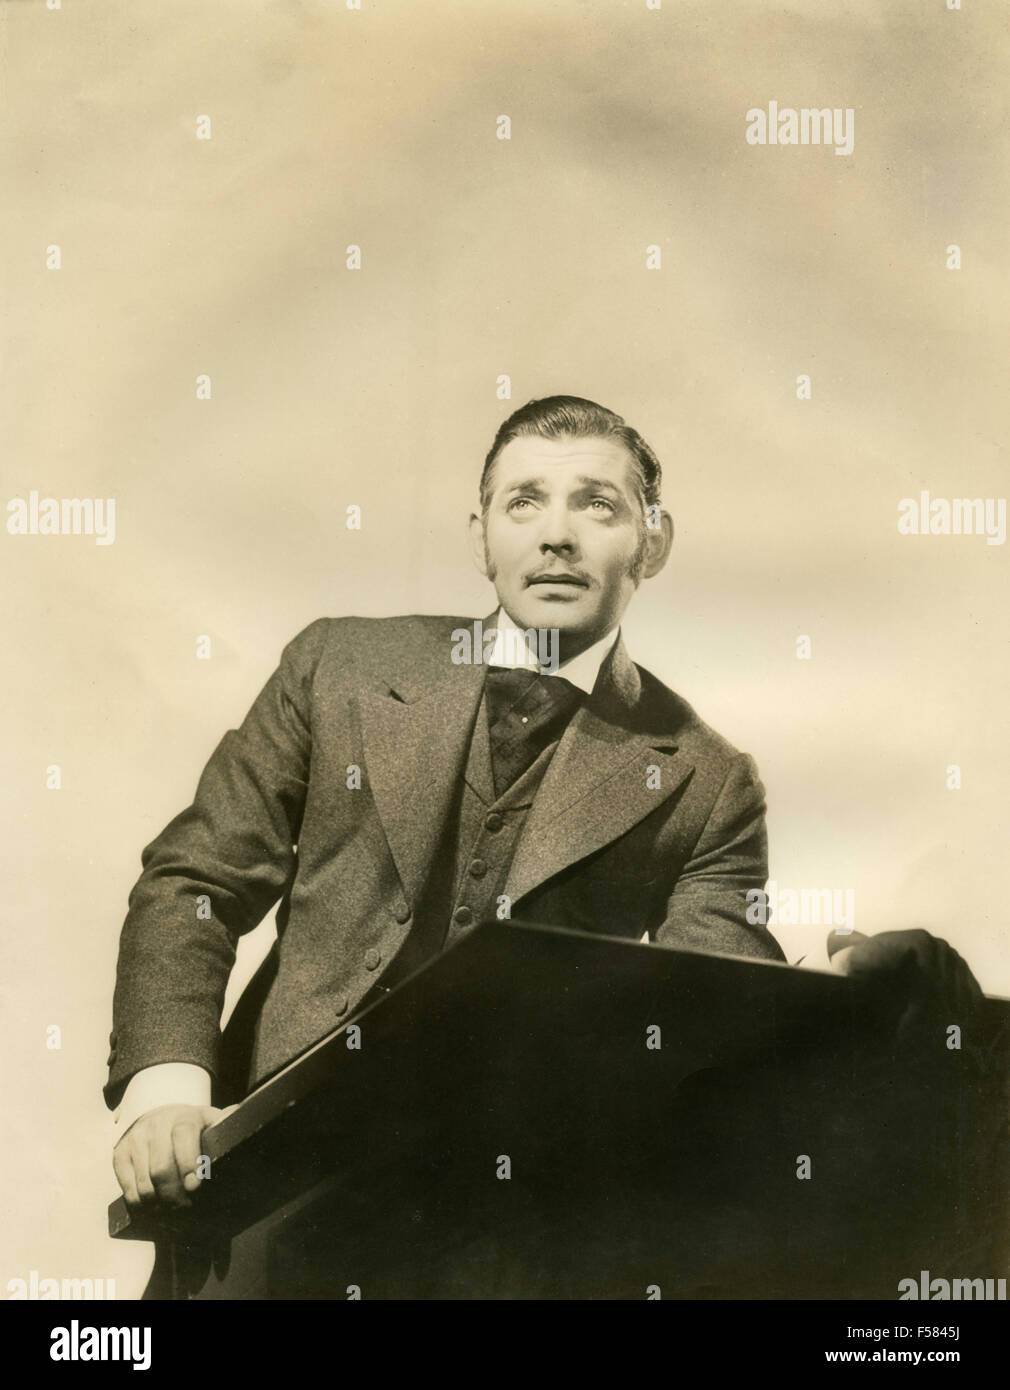 The American actor Clark Gable in the movie Parnell, 1937 - Stock Image